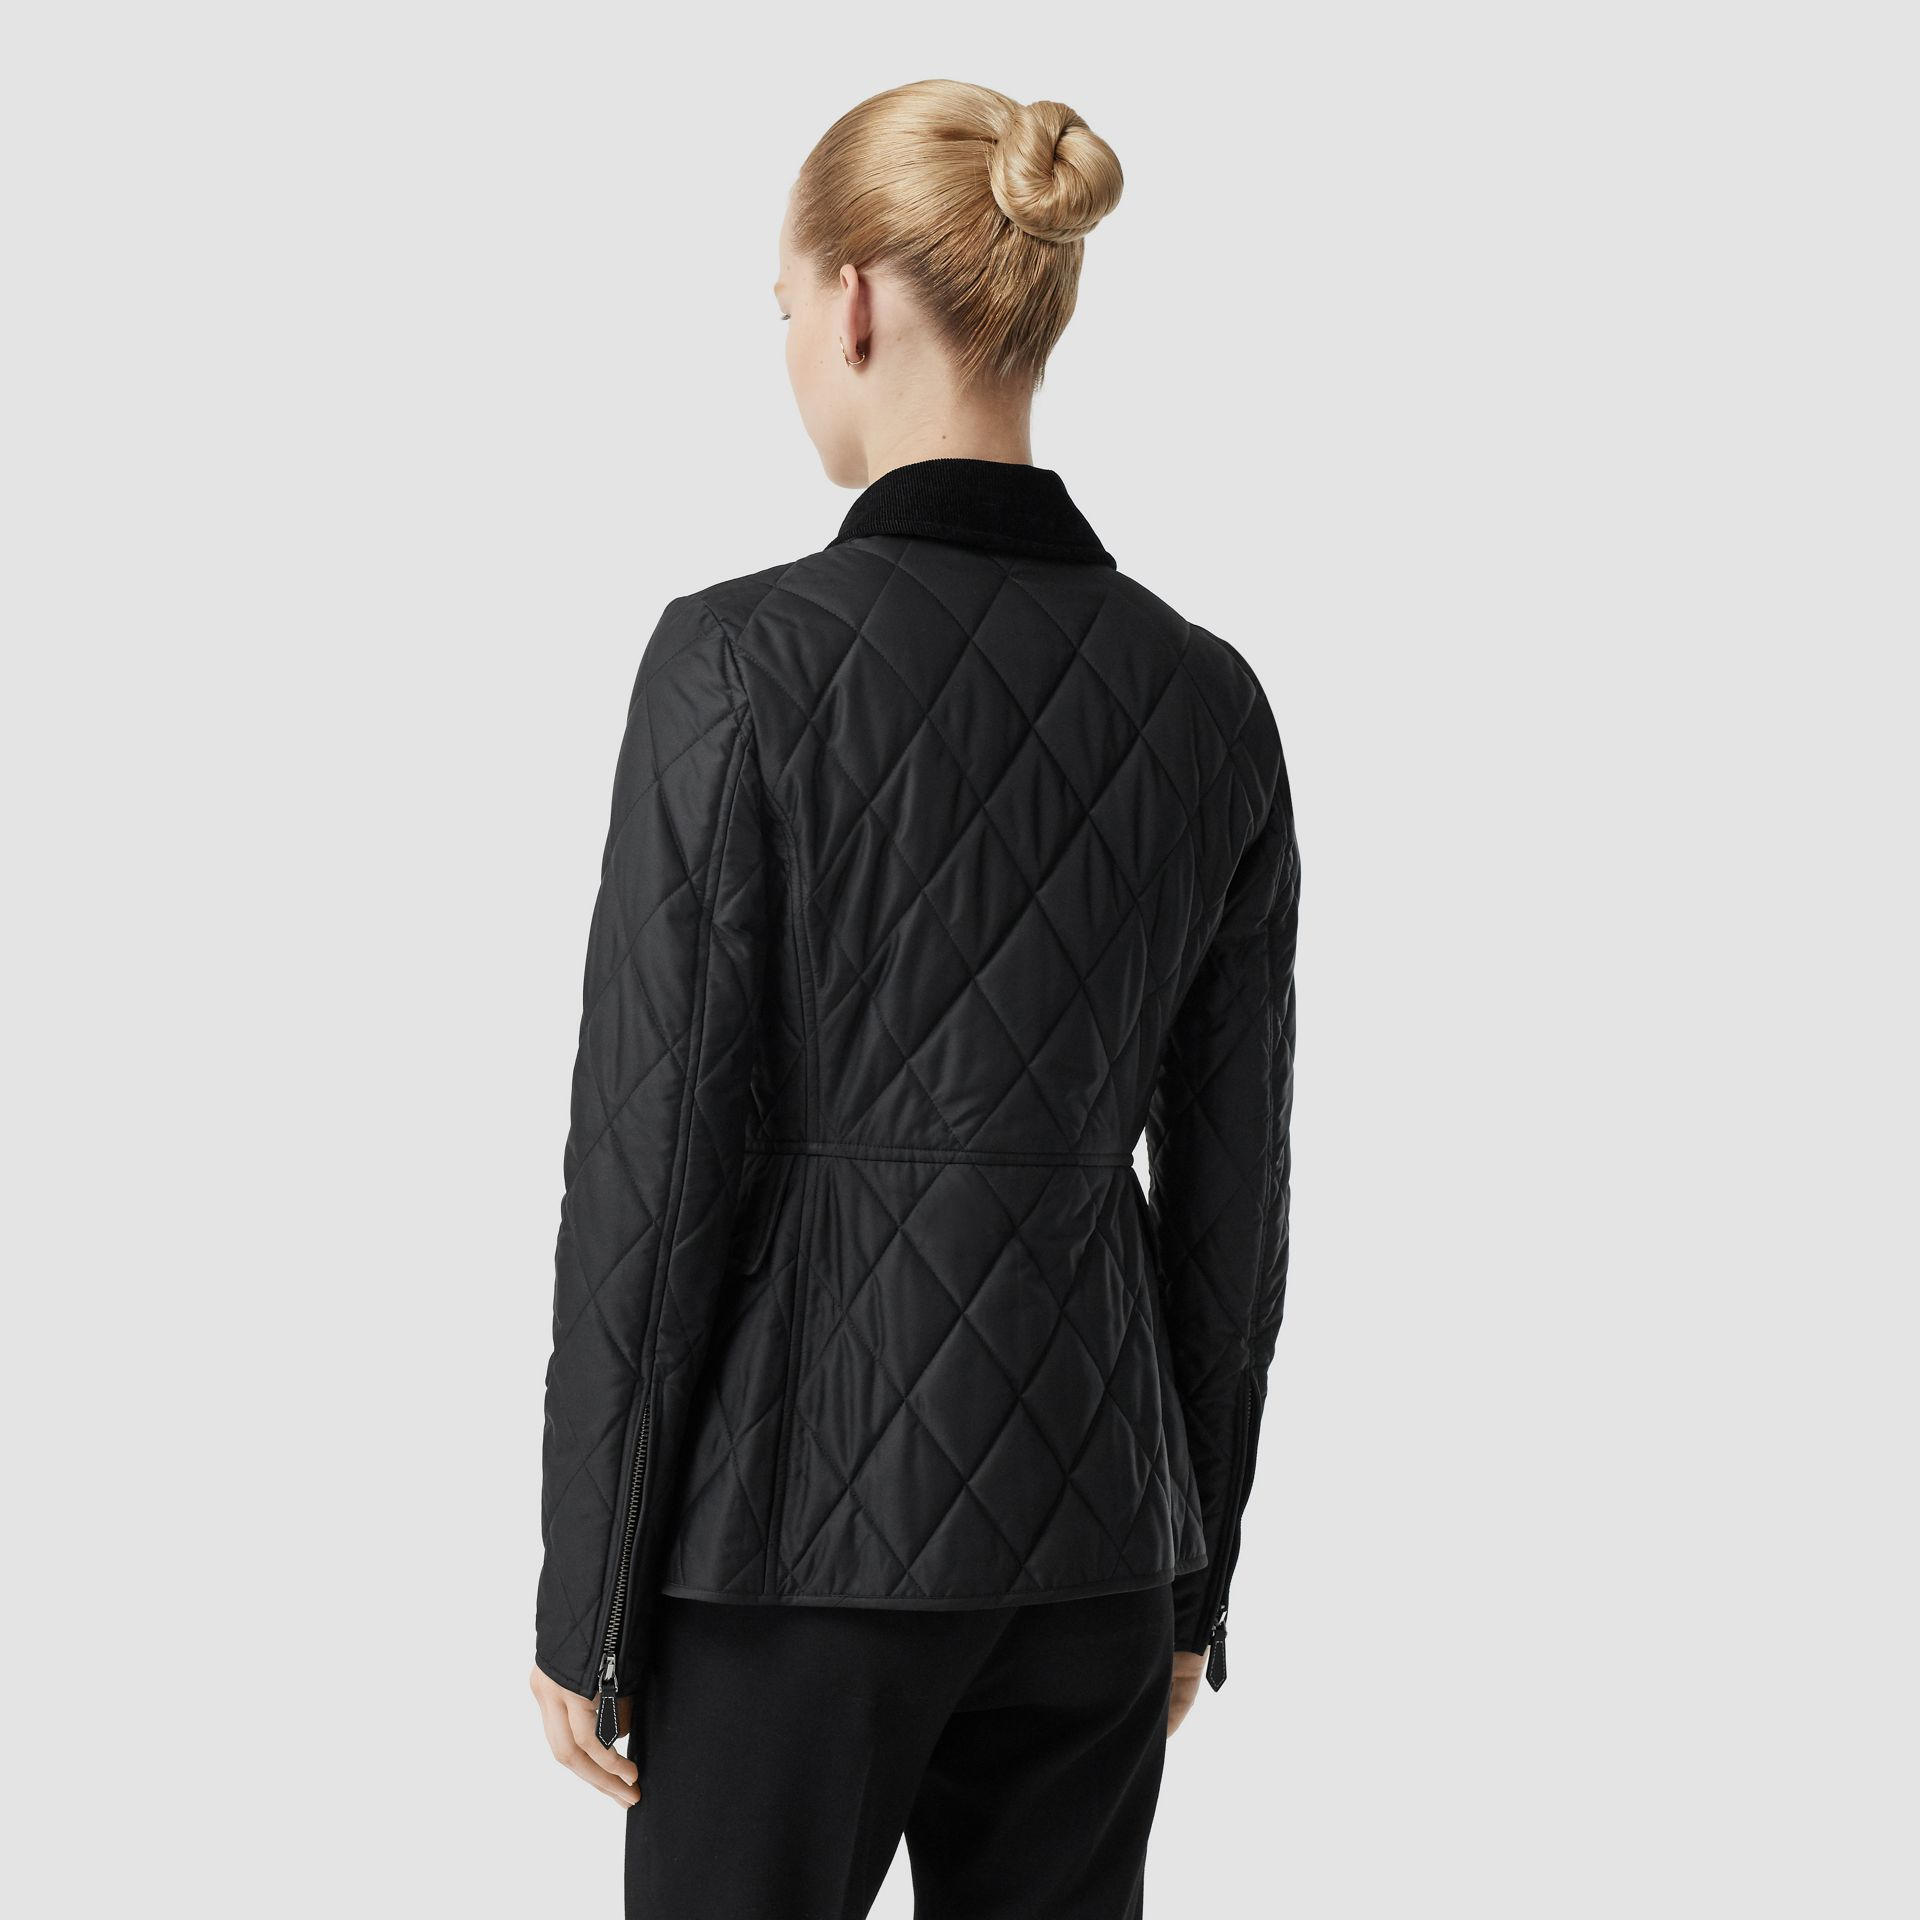 Monogram Motif Quilted Riding Jacket in Black - Women | Burberry - gallery image 2